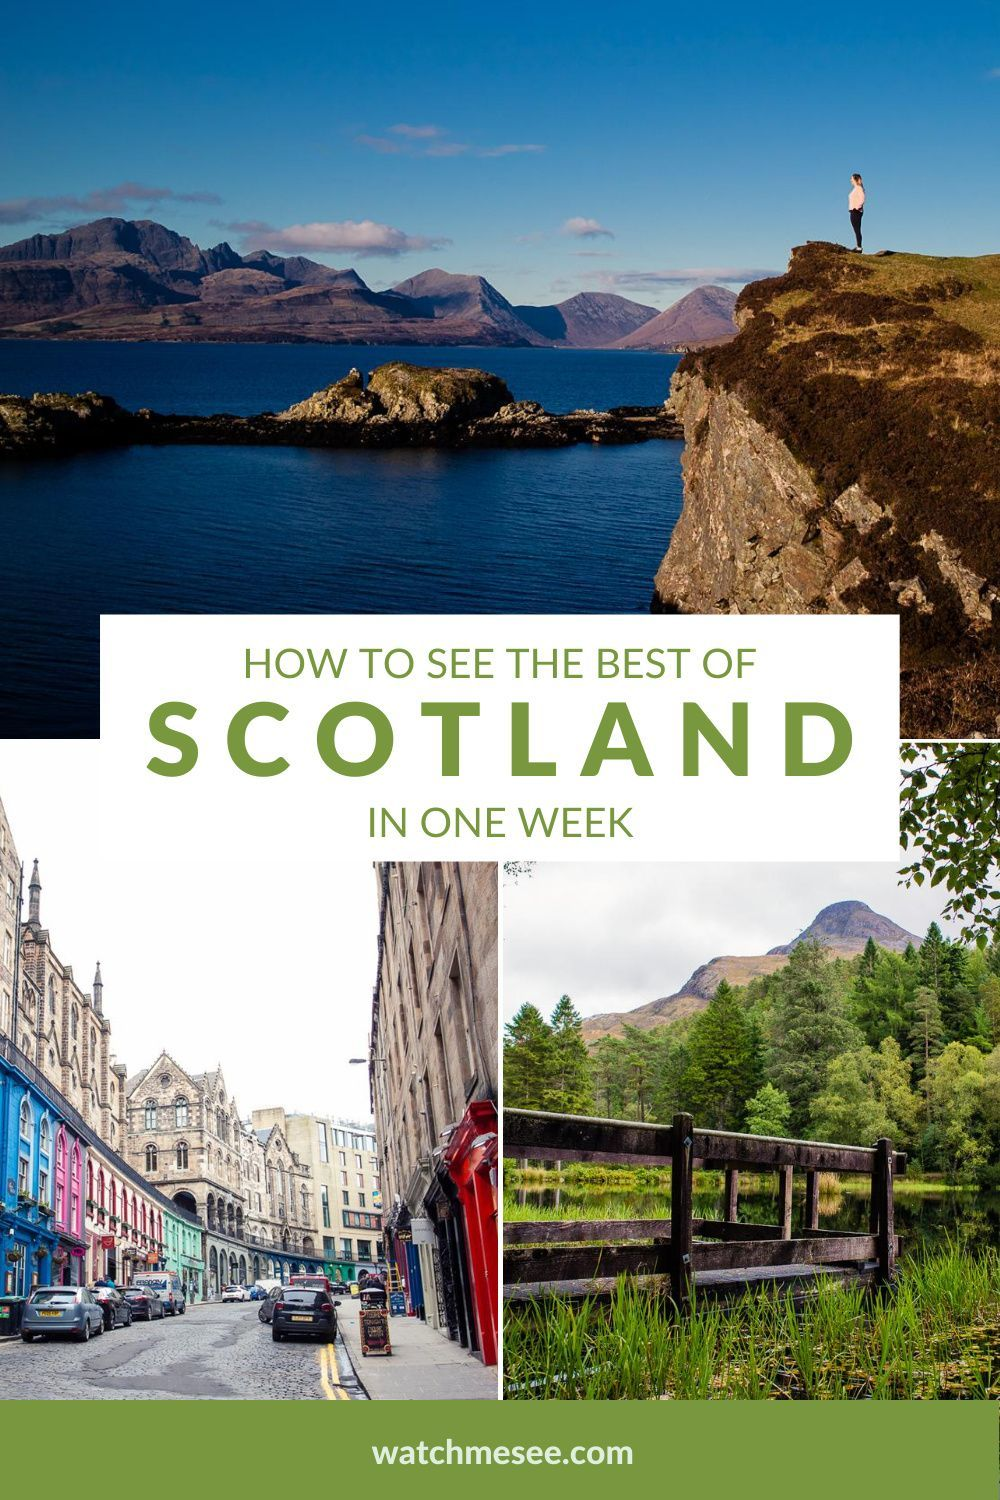 How to see the Best of Scotland in One Week